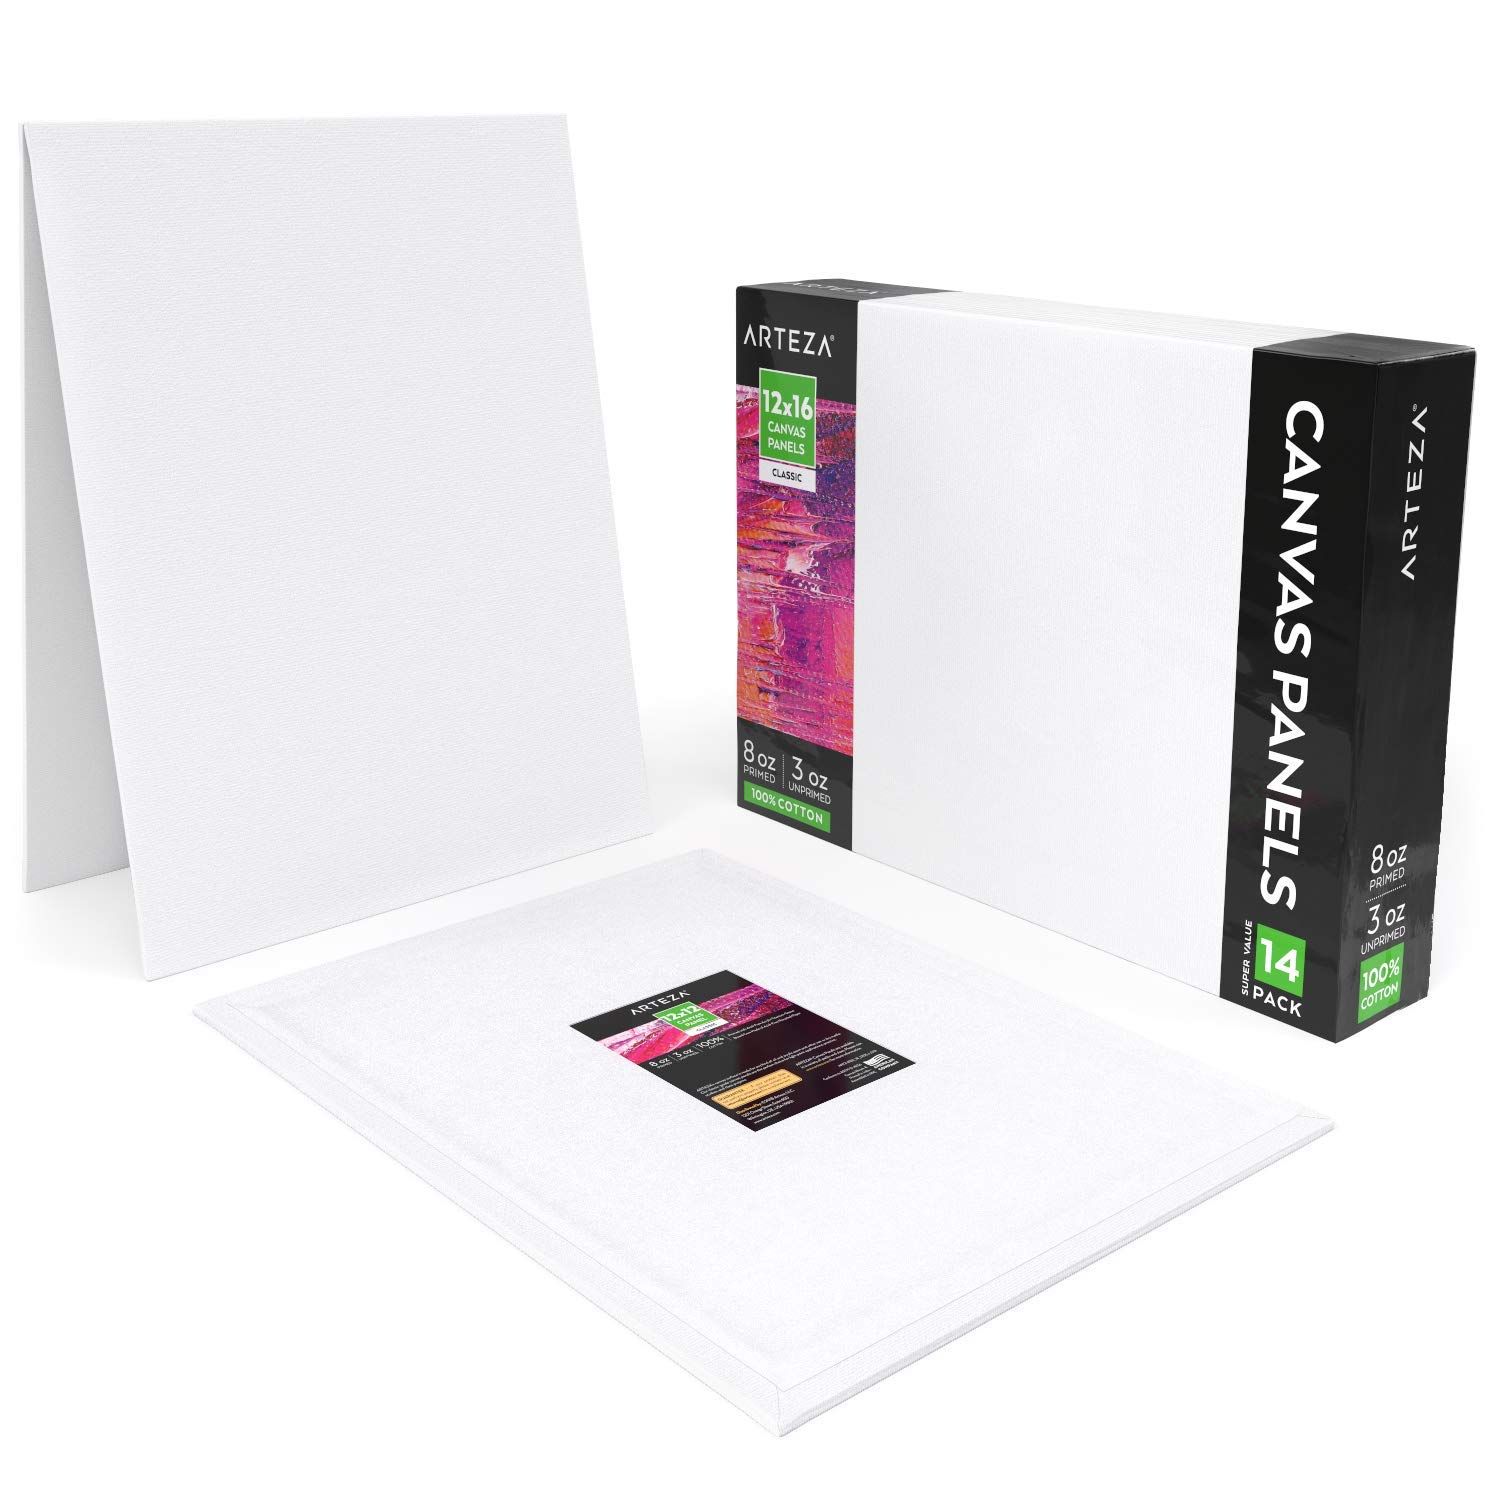 Arteza 12''x16'' White Blank Canvas Panel Boards, Bulk (Pack of 14), Primed 100% Cotton, for Acrylic Painting, Oil Paint & Wet Art Media, Canvases for Professional Artist, Hobby Painters & Beginners